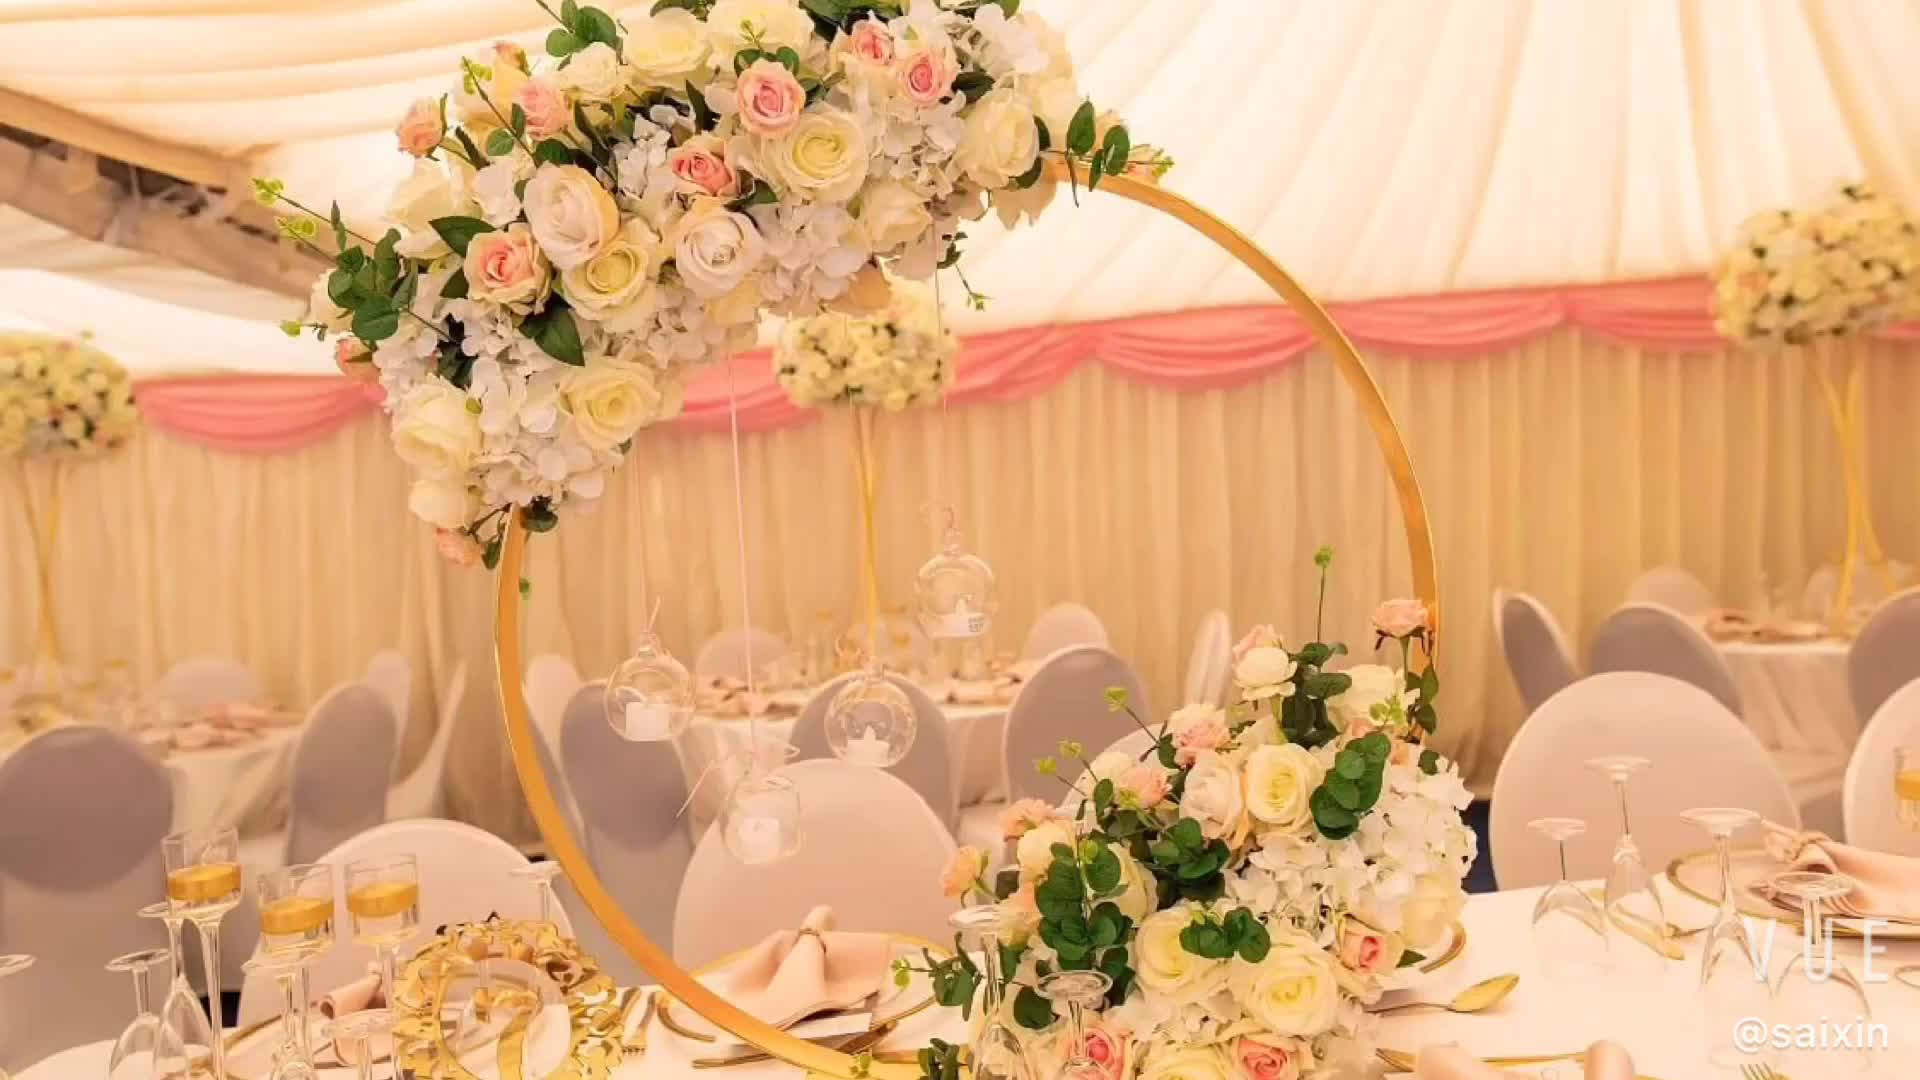 Hot Sell Wedding Centerpiece Candelabra Flower Stand - Buy Wedding ...